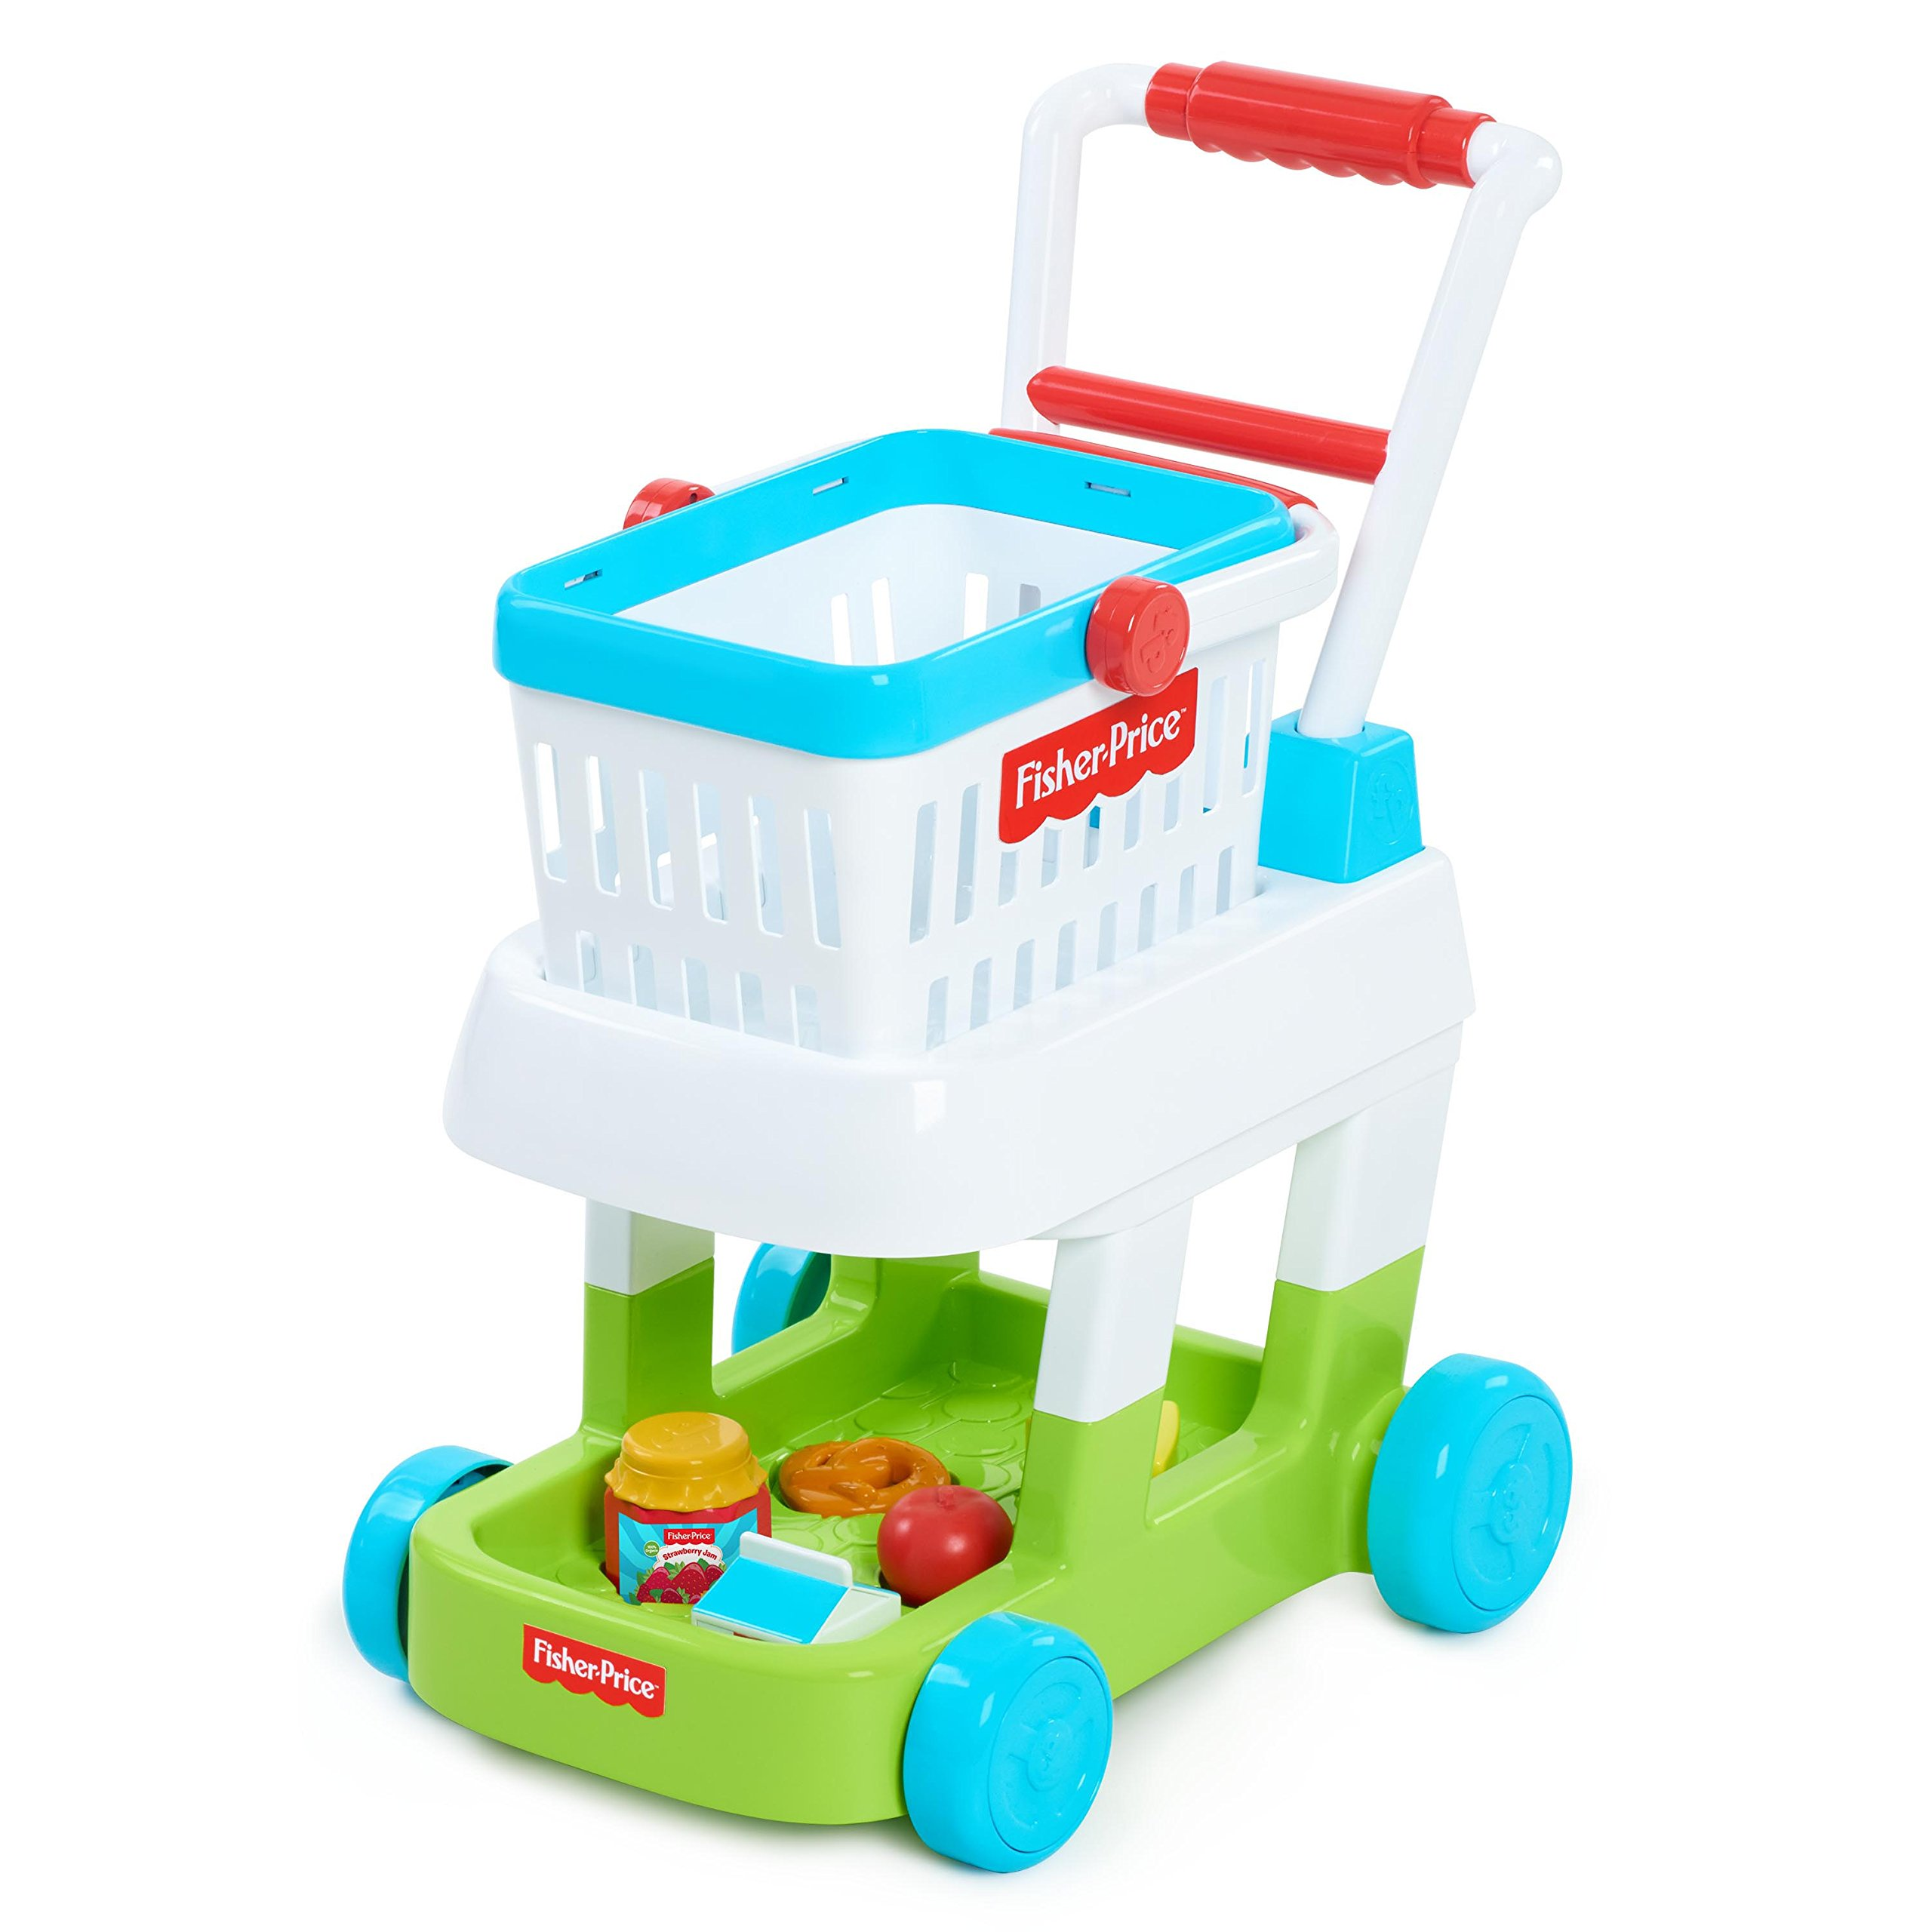 Fisher-Price 93525 Shopping Cart Toys, Multicolor by Fisher-Price